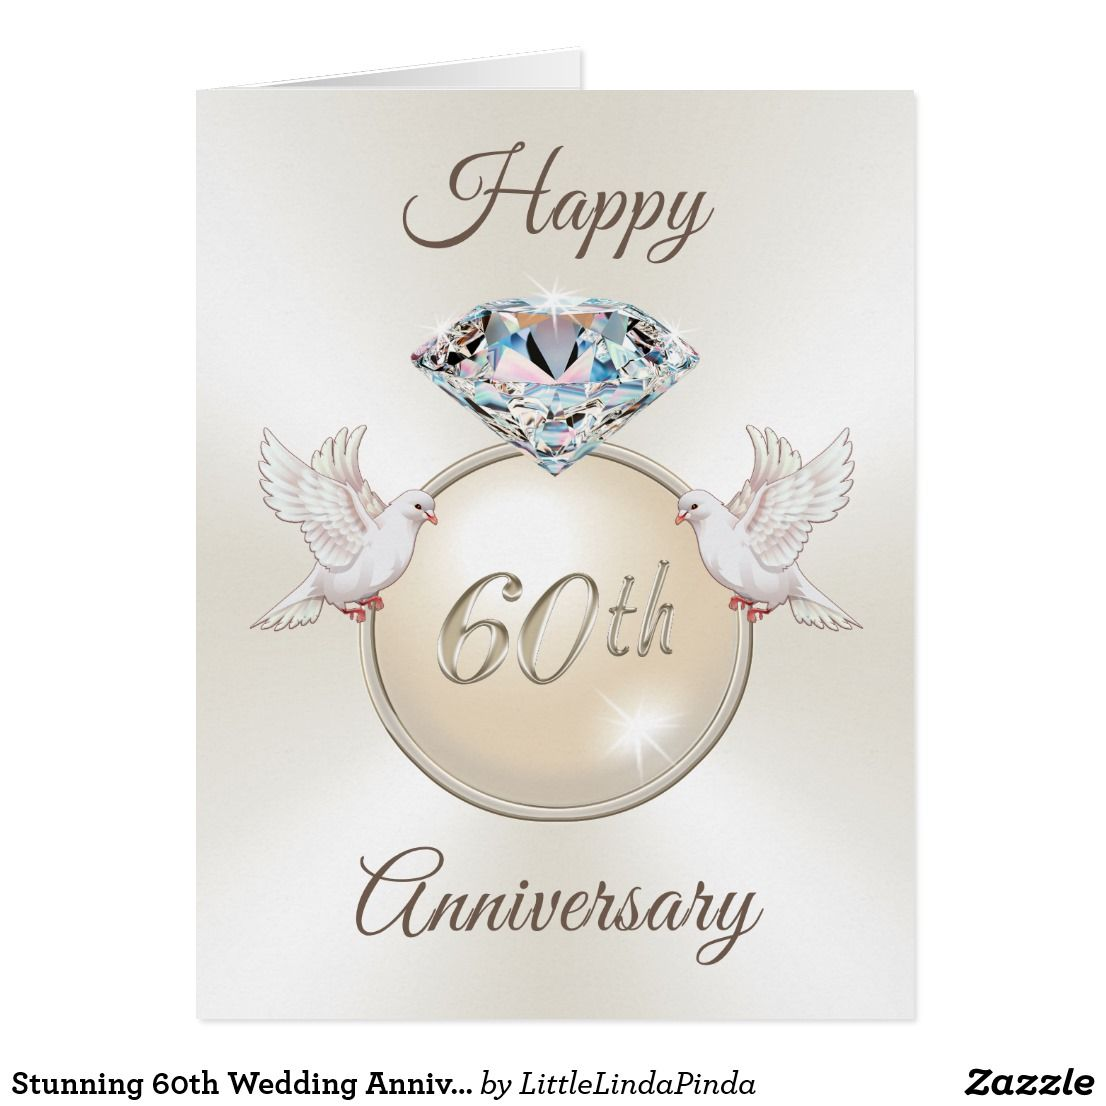 Stunning 60th Wedding Anniversary Cards In 3 Sizes Zazzle Com In 2021 Happy 60th Anniversary Wedding Anniversary Wishes Wedding Anniversary Cards